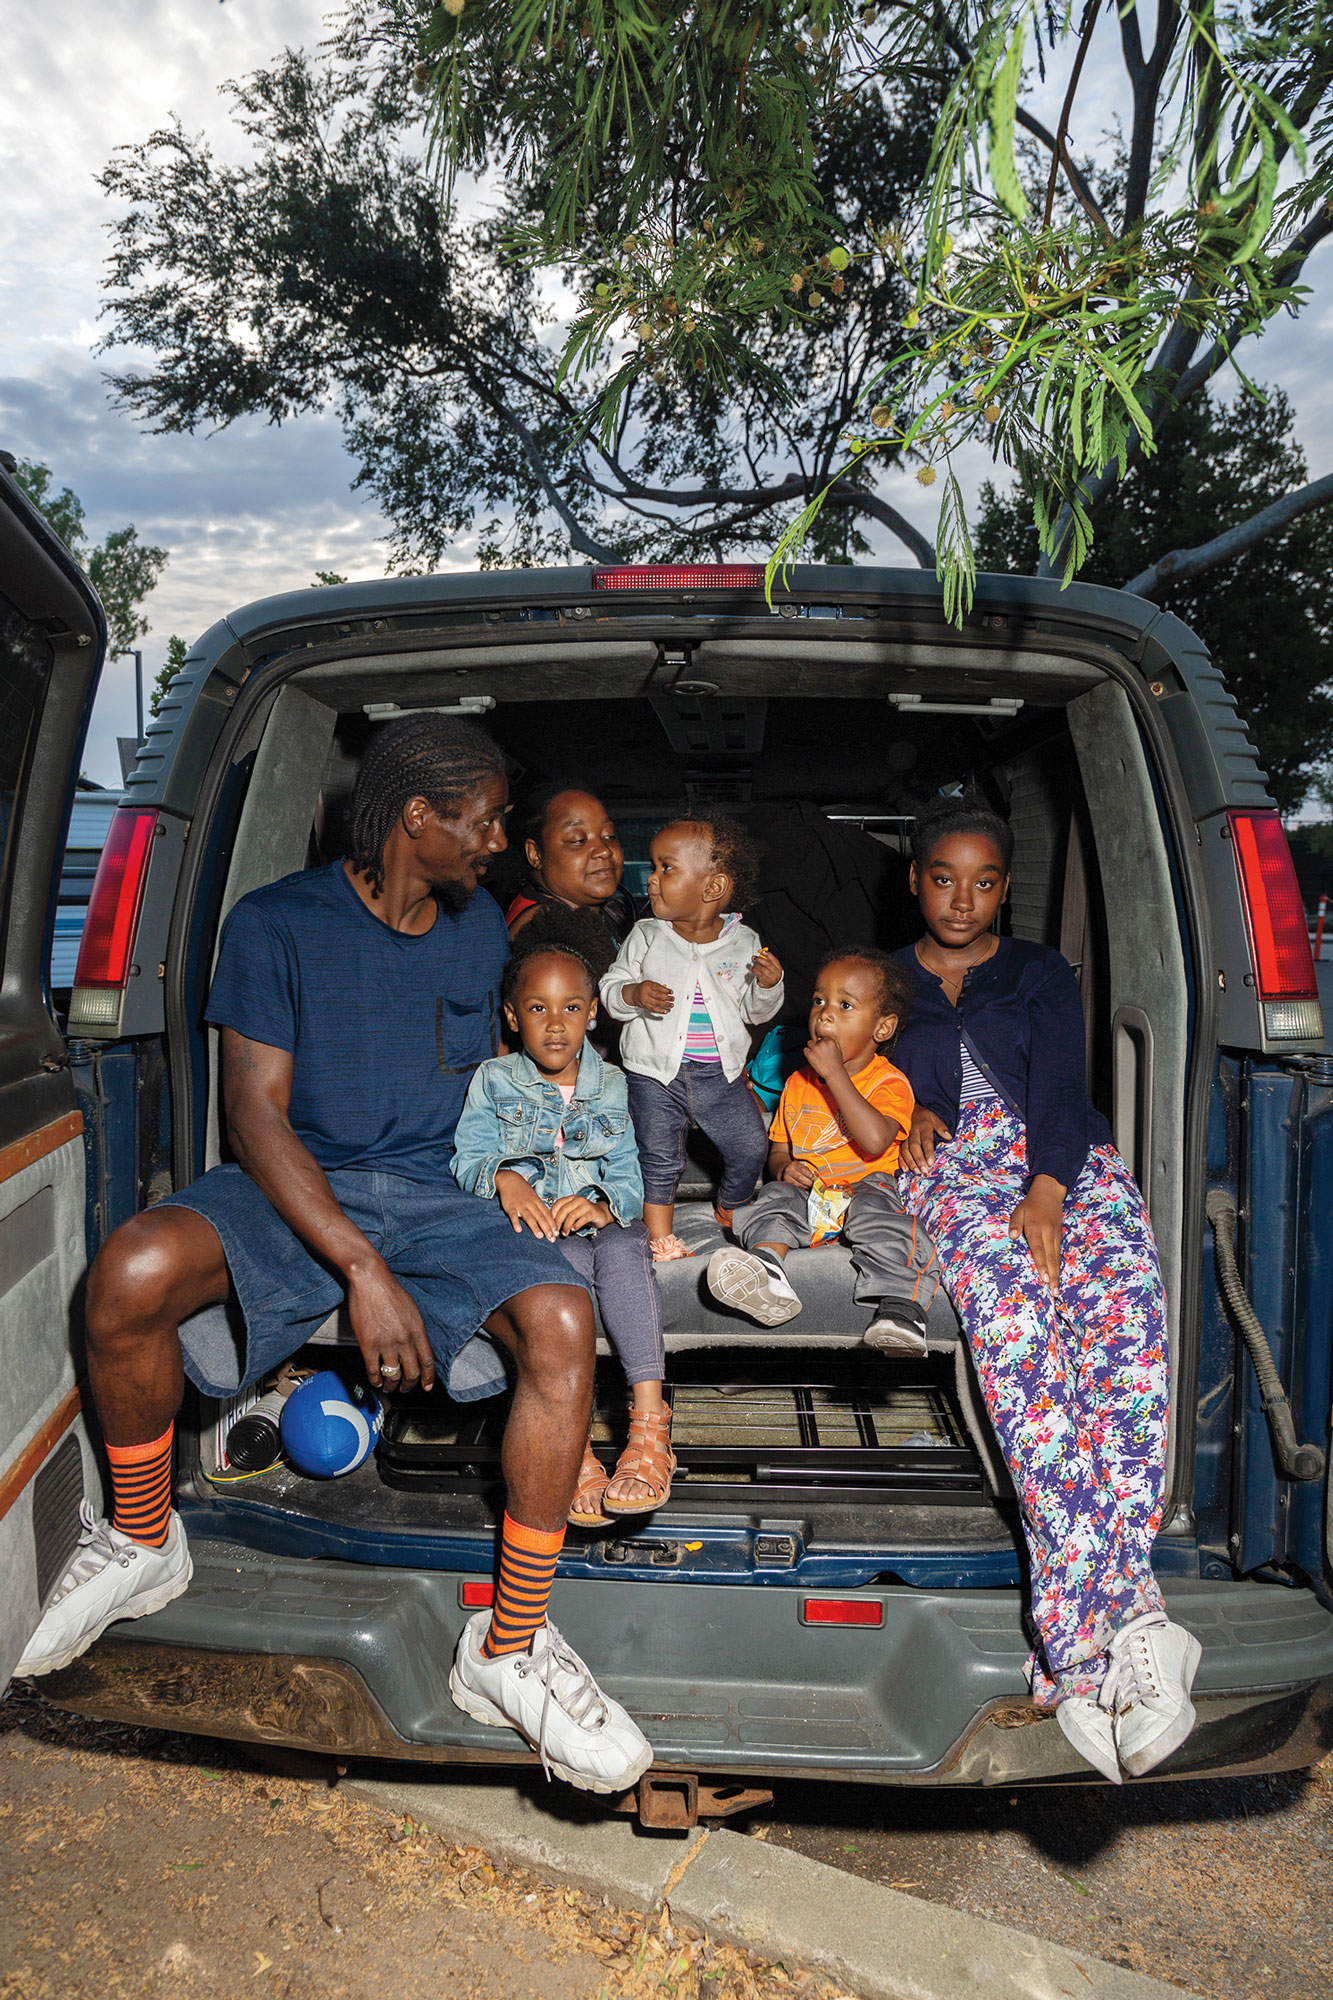 Ray Adkins, far left, and Christina Wade, second from the left, and their children, Eleisha Wade, 4, Avia Wade, 1, Adriel Adkins, 2, and Auneste Caldwell, 16, sit in their van where they used to sleep while staying in the LifeMove Safe and Supportive Parking lot in San Jose. The family stayed on the safe lot for two weeks before finding housing. Photographs by Erin Brethauer